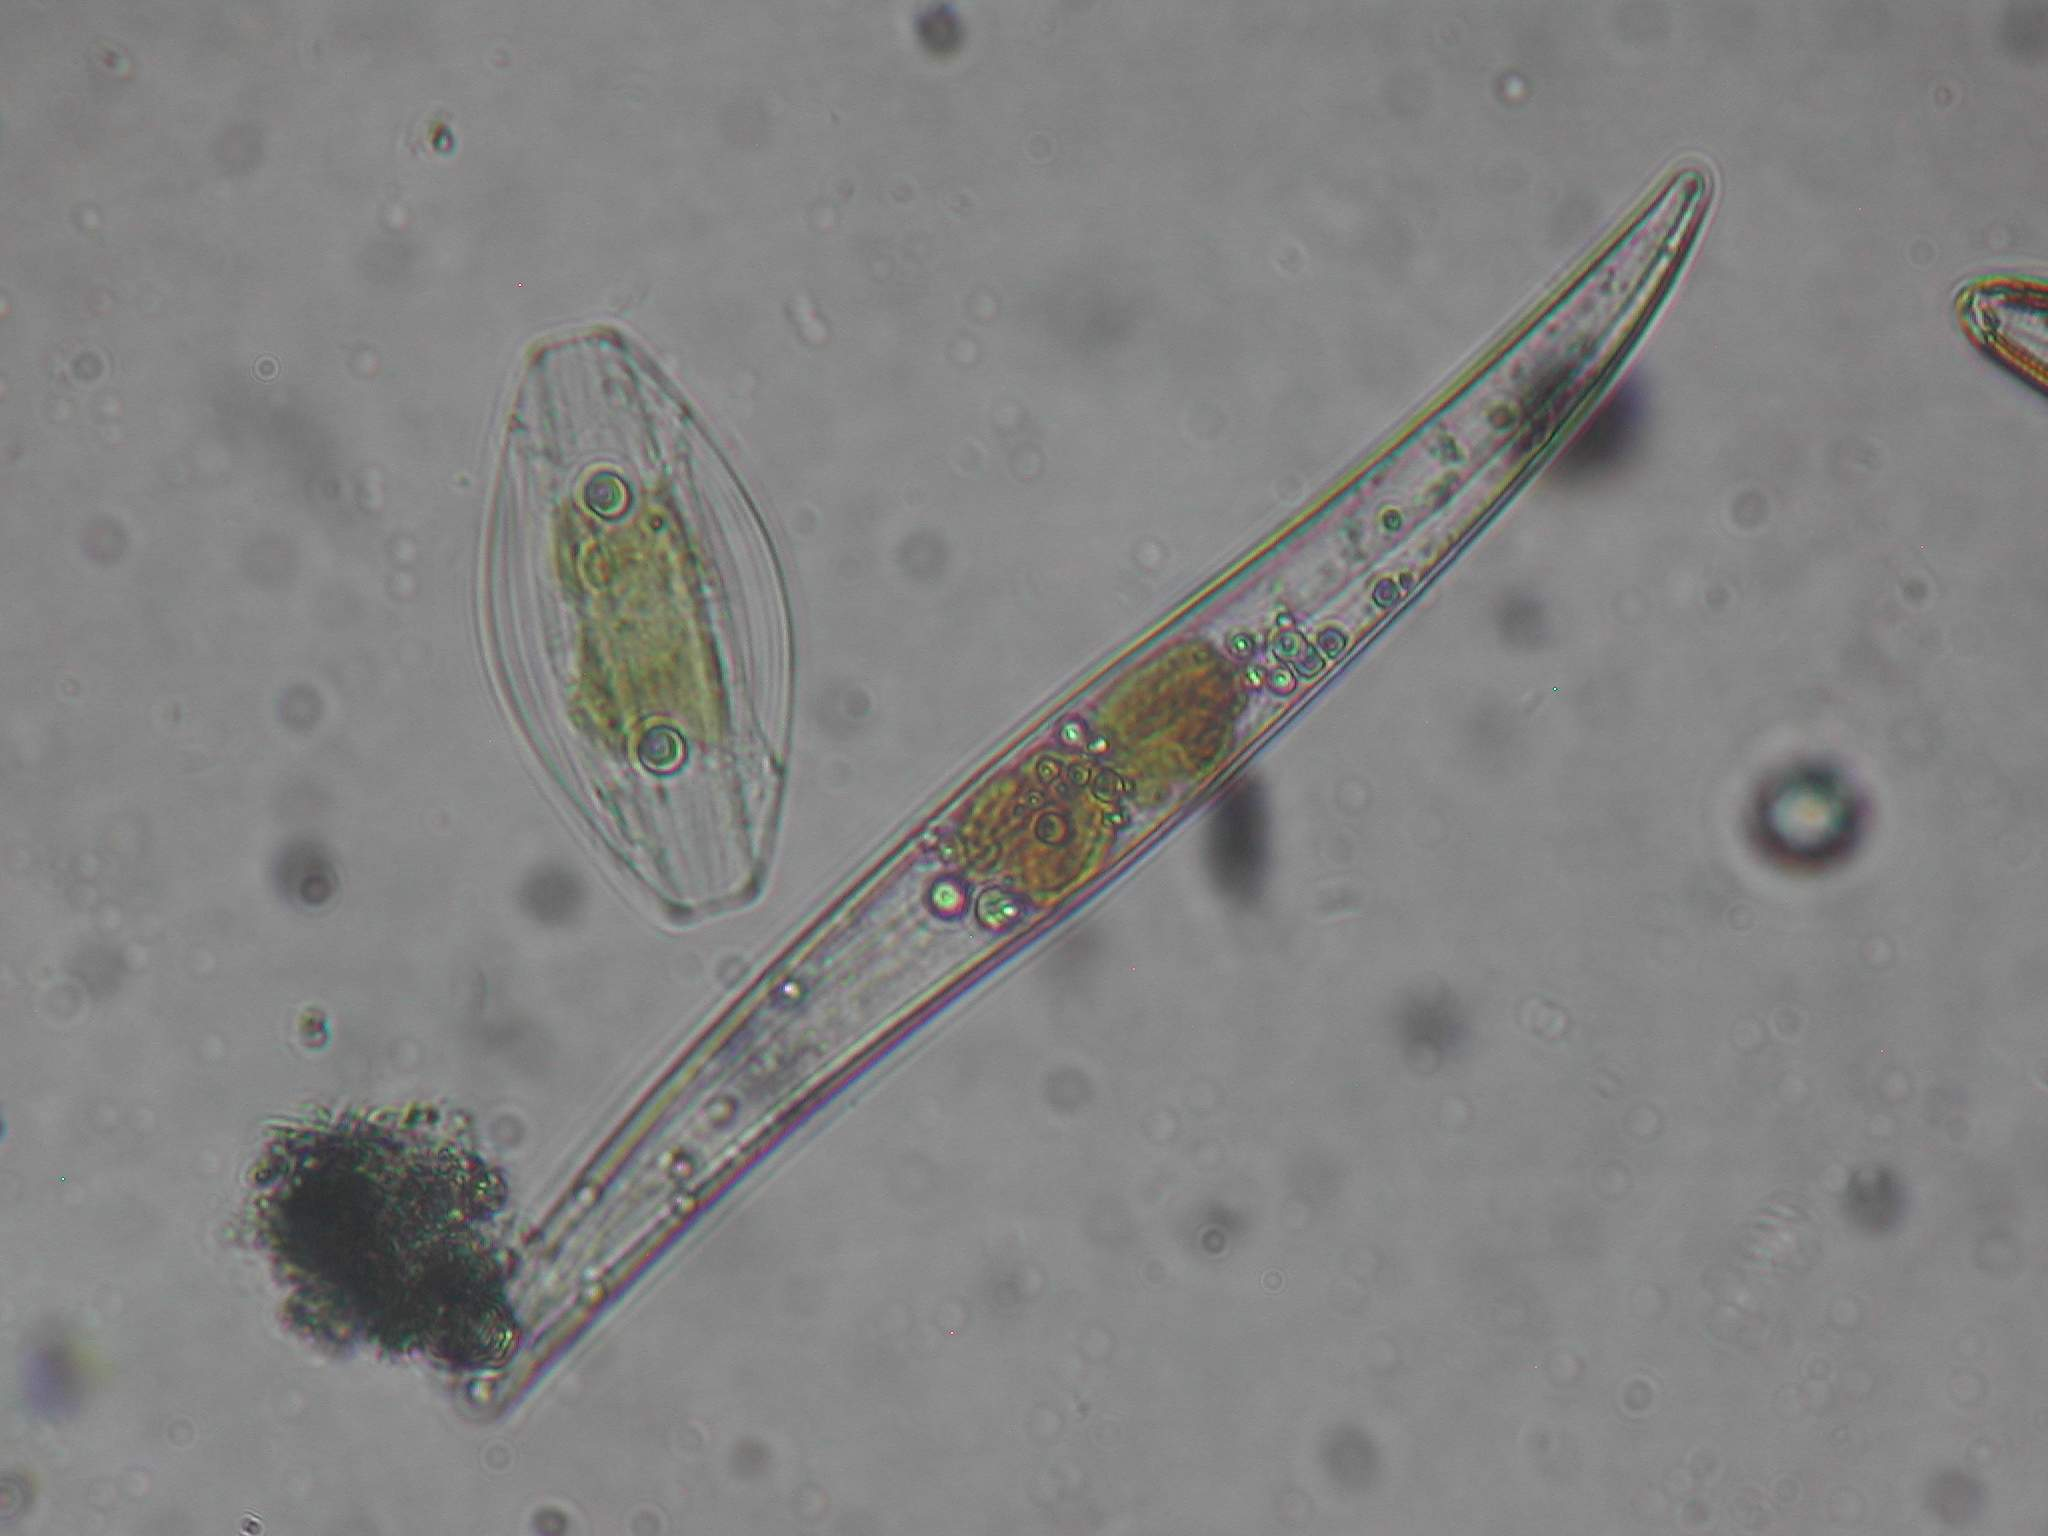 Diatom CellDiatom Cell